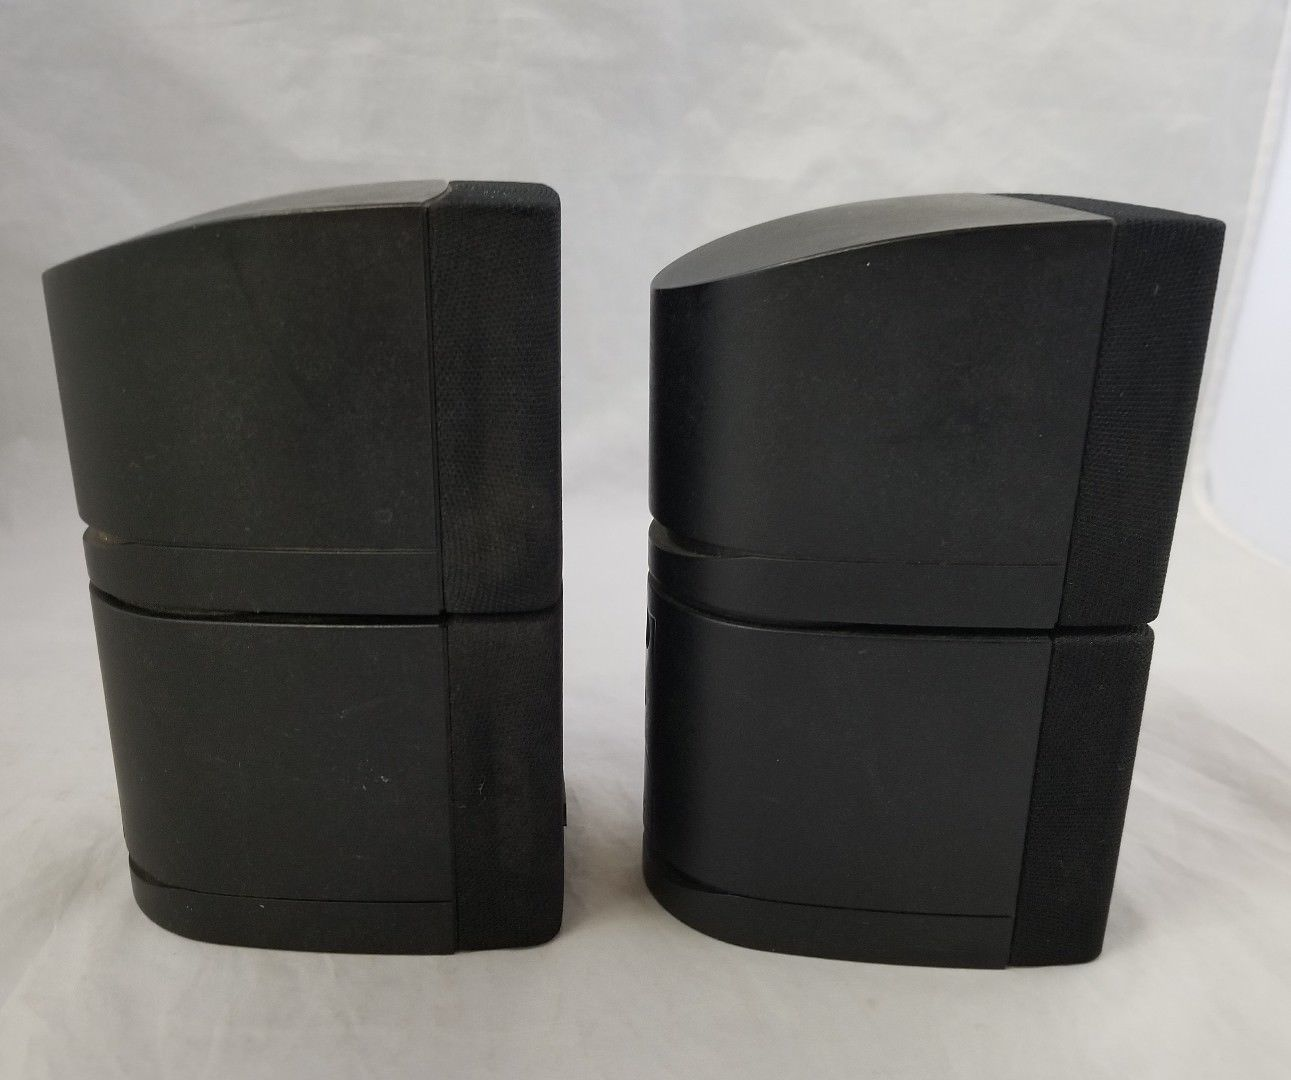 "Bose Double Cube Speakers Set of 2 Lifestyle Acoustimass Black 6.25""H x 3""W x4""D"